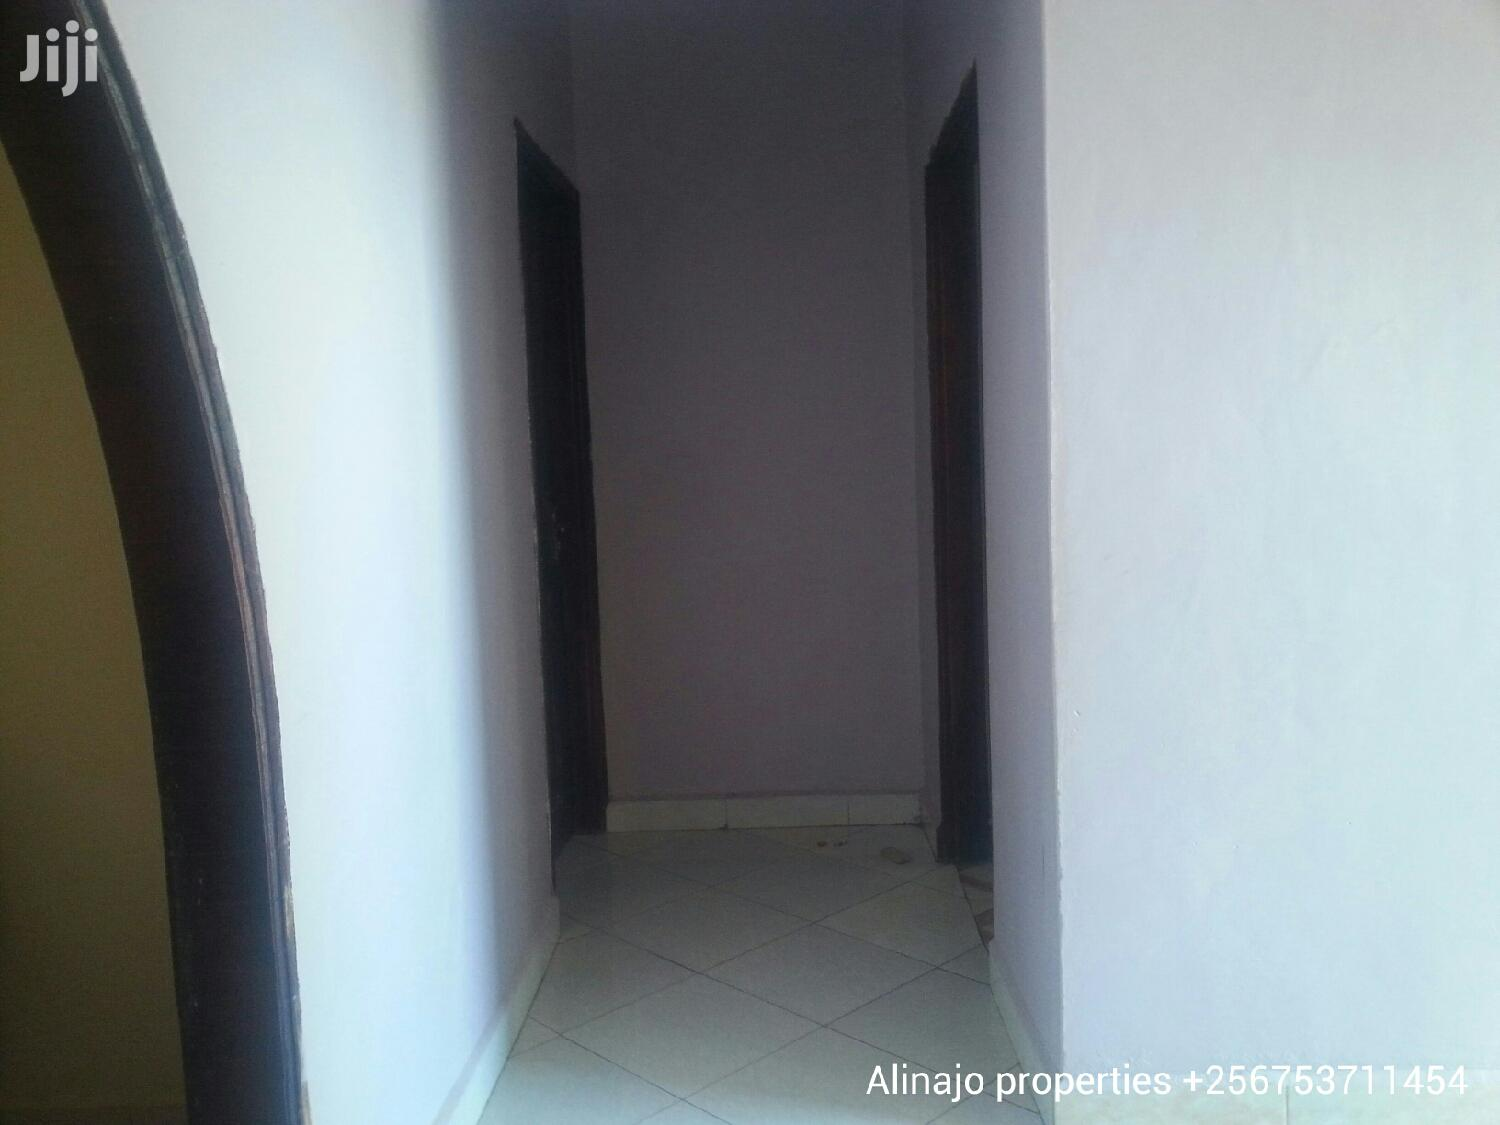 House For Sell With Land Tittle In Gayaza Bulamu On 0.9 Decimals | Houses & Apartments For Sale for sale in Wakiso, Central Region, Uganda